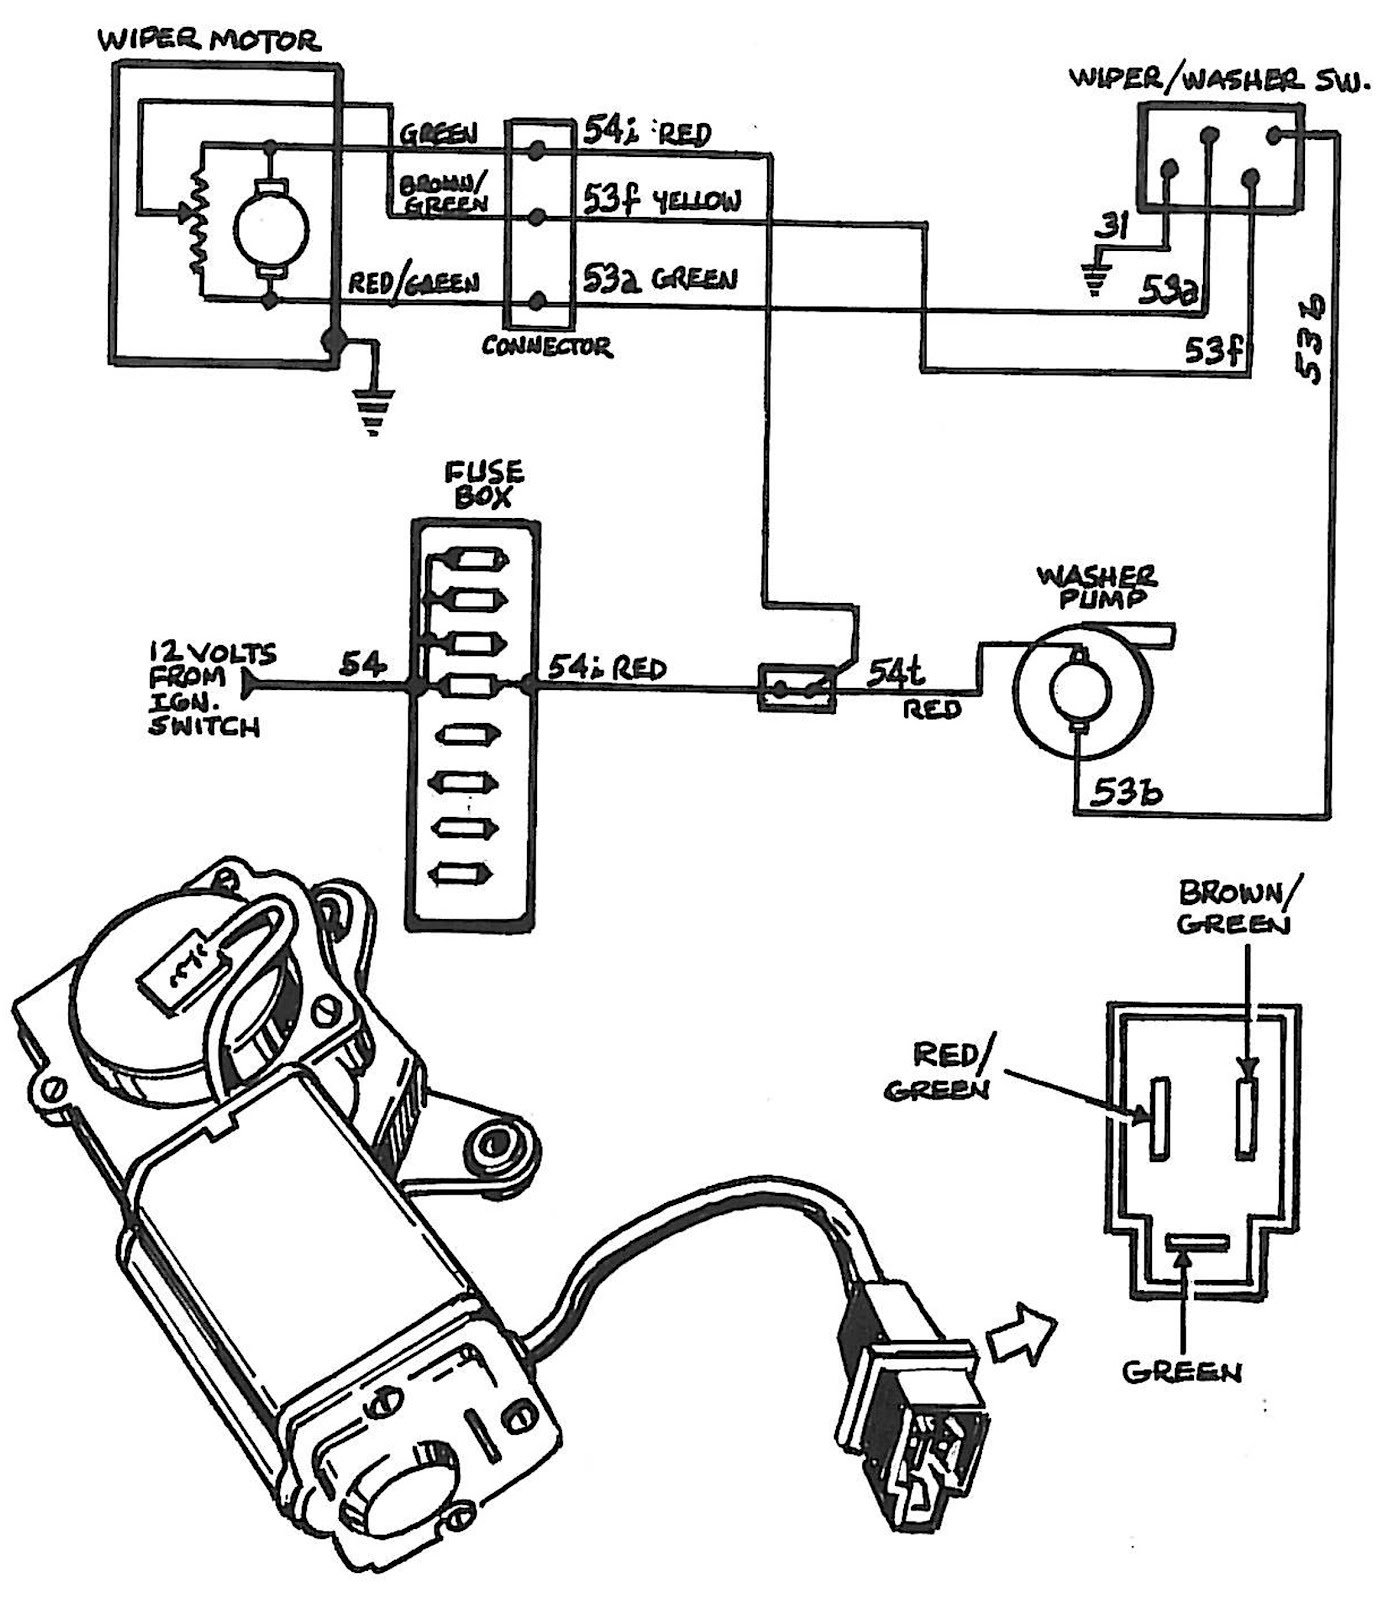 chevy windshield wiper motor wiring diagram CgTTPww trico wiper motor wiring diagram windshield wiper motor diagram lucas wiper motor wiring diagram at alyssarenee.co